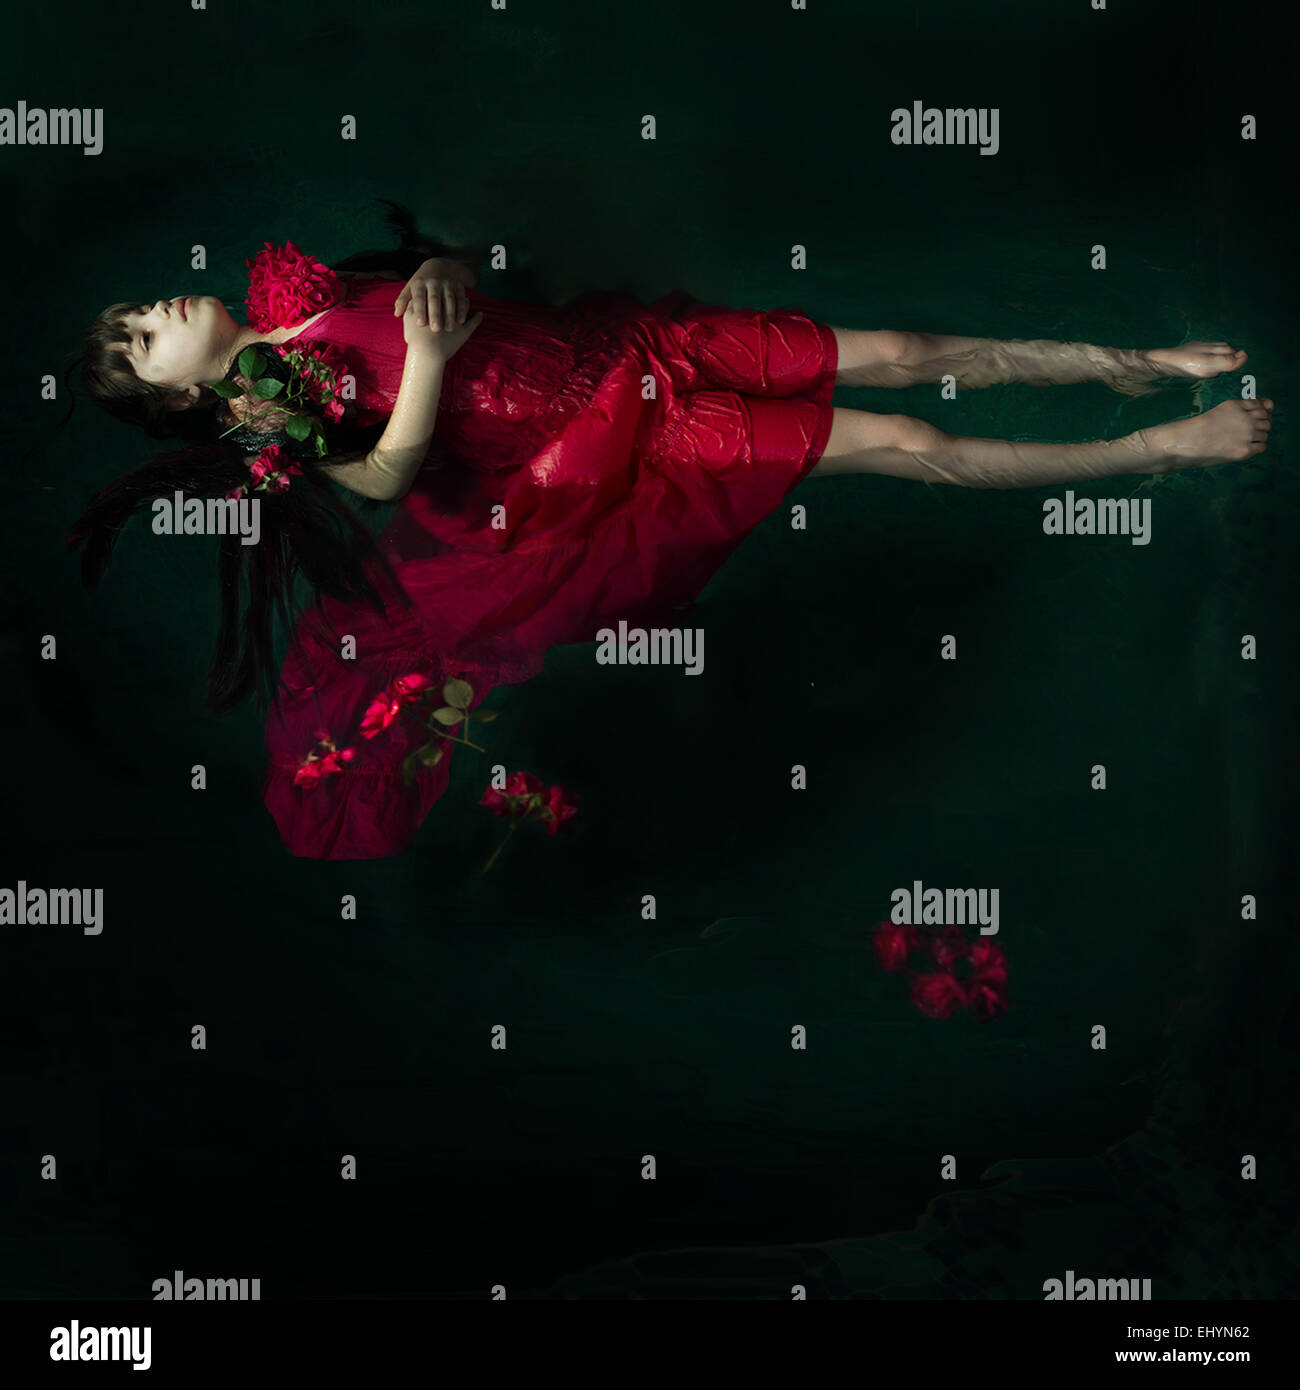 Girl in a red dress floating in water surrounded by red roses Stock Photo